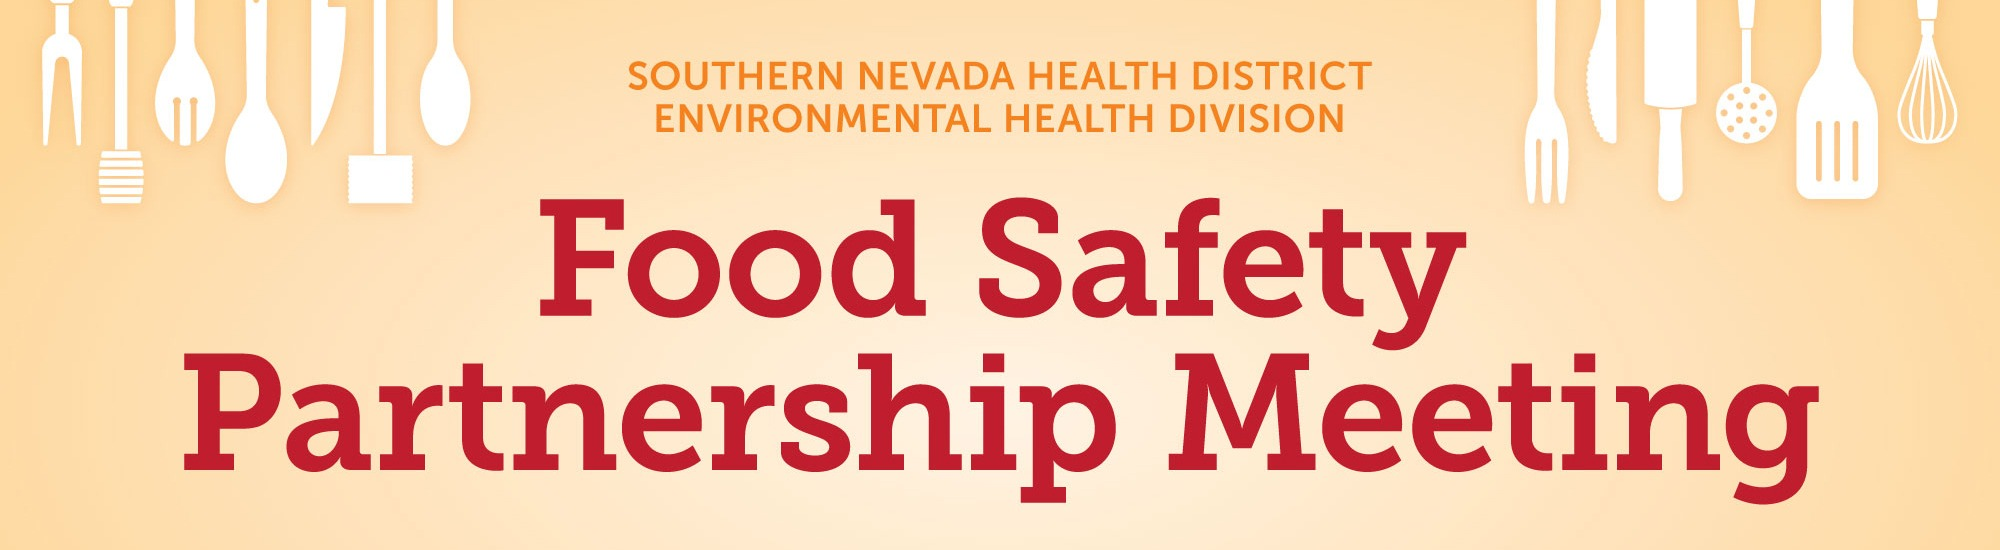 food safety partnership